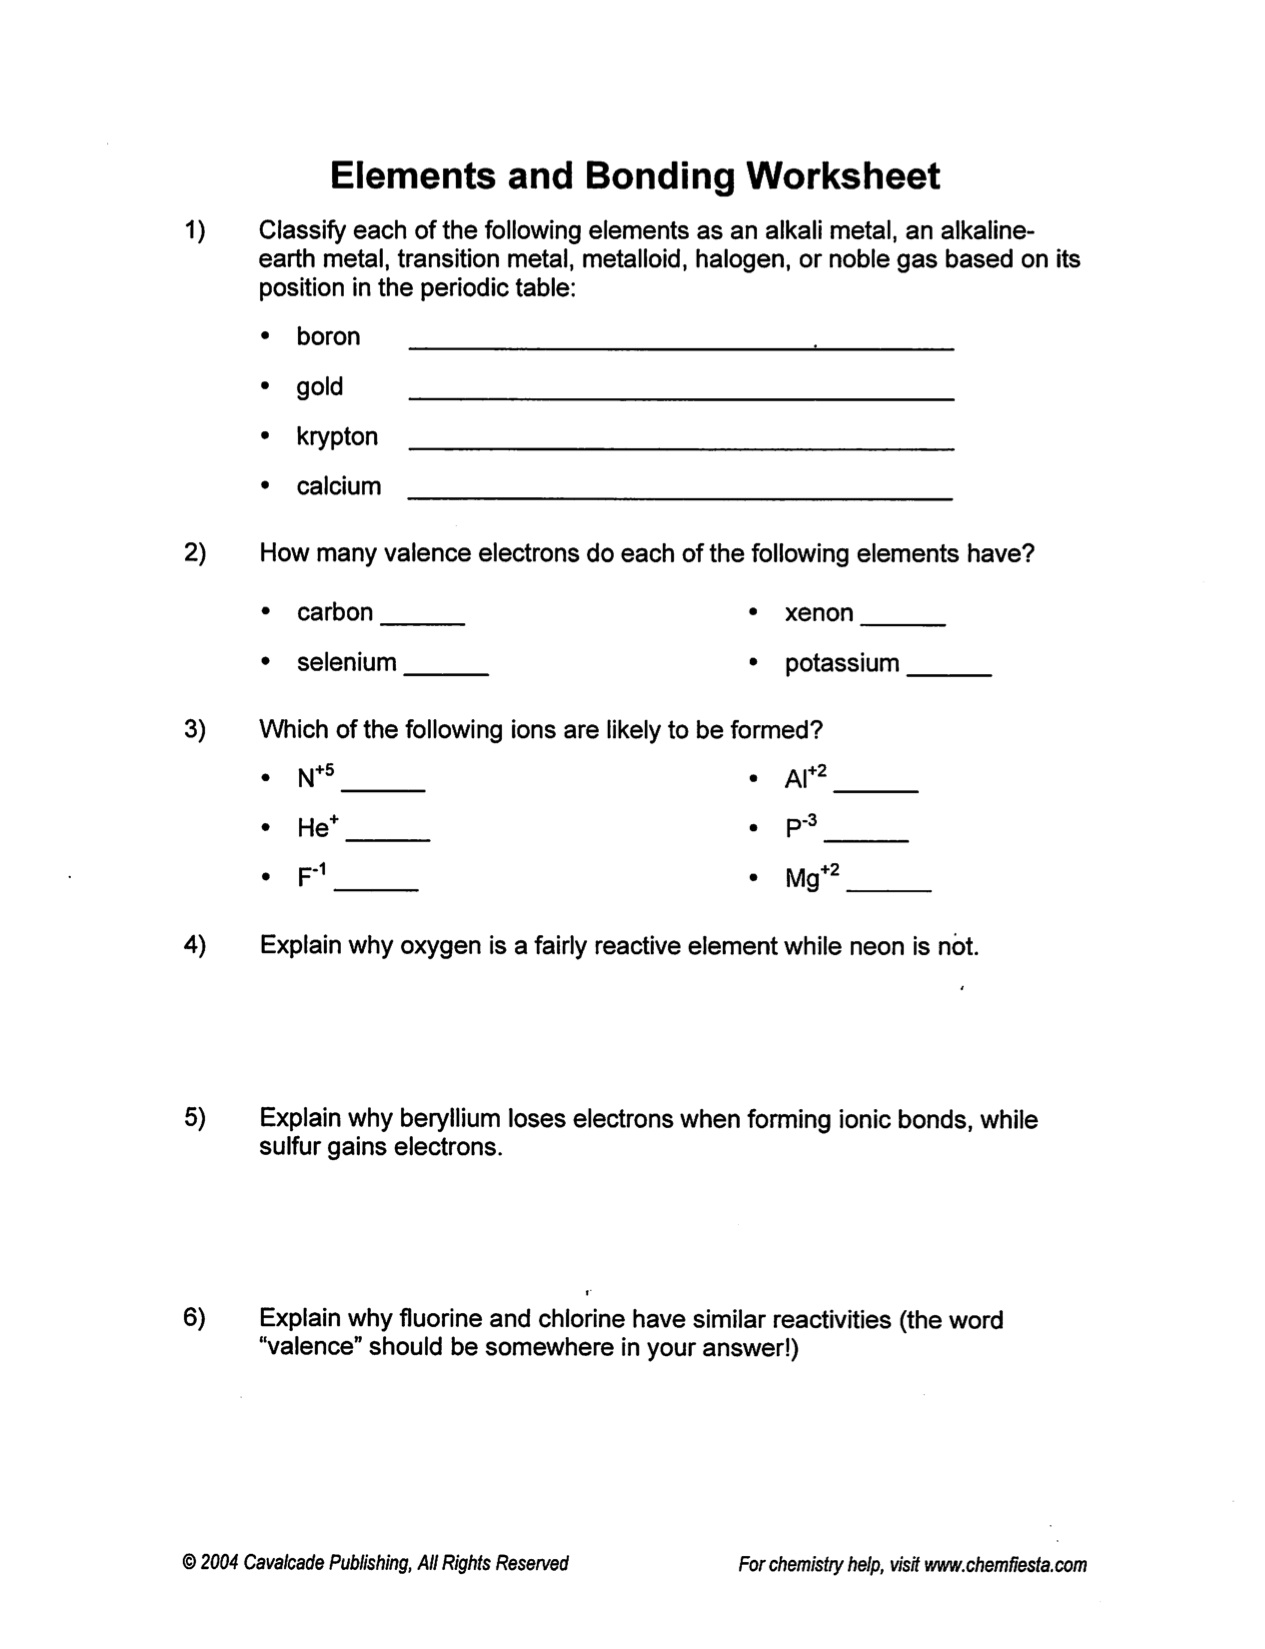 Printables Chemical Bonds Worksheet printables chemical bonds worksheet safarmediapps worksheets bonding answers imperialdesignstudio view slide show 1 covalent 2 ionic bonding